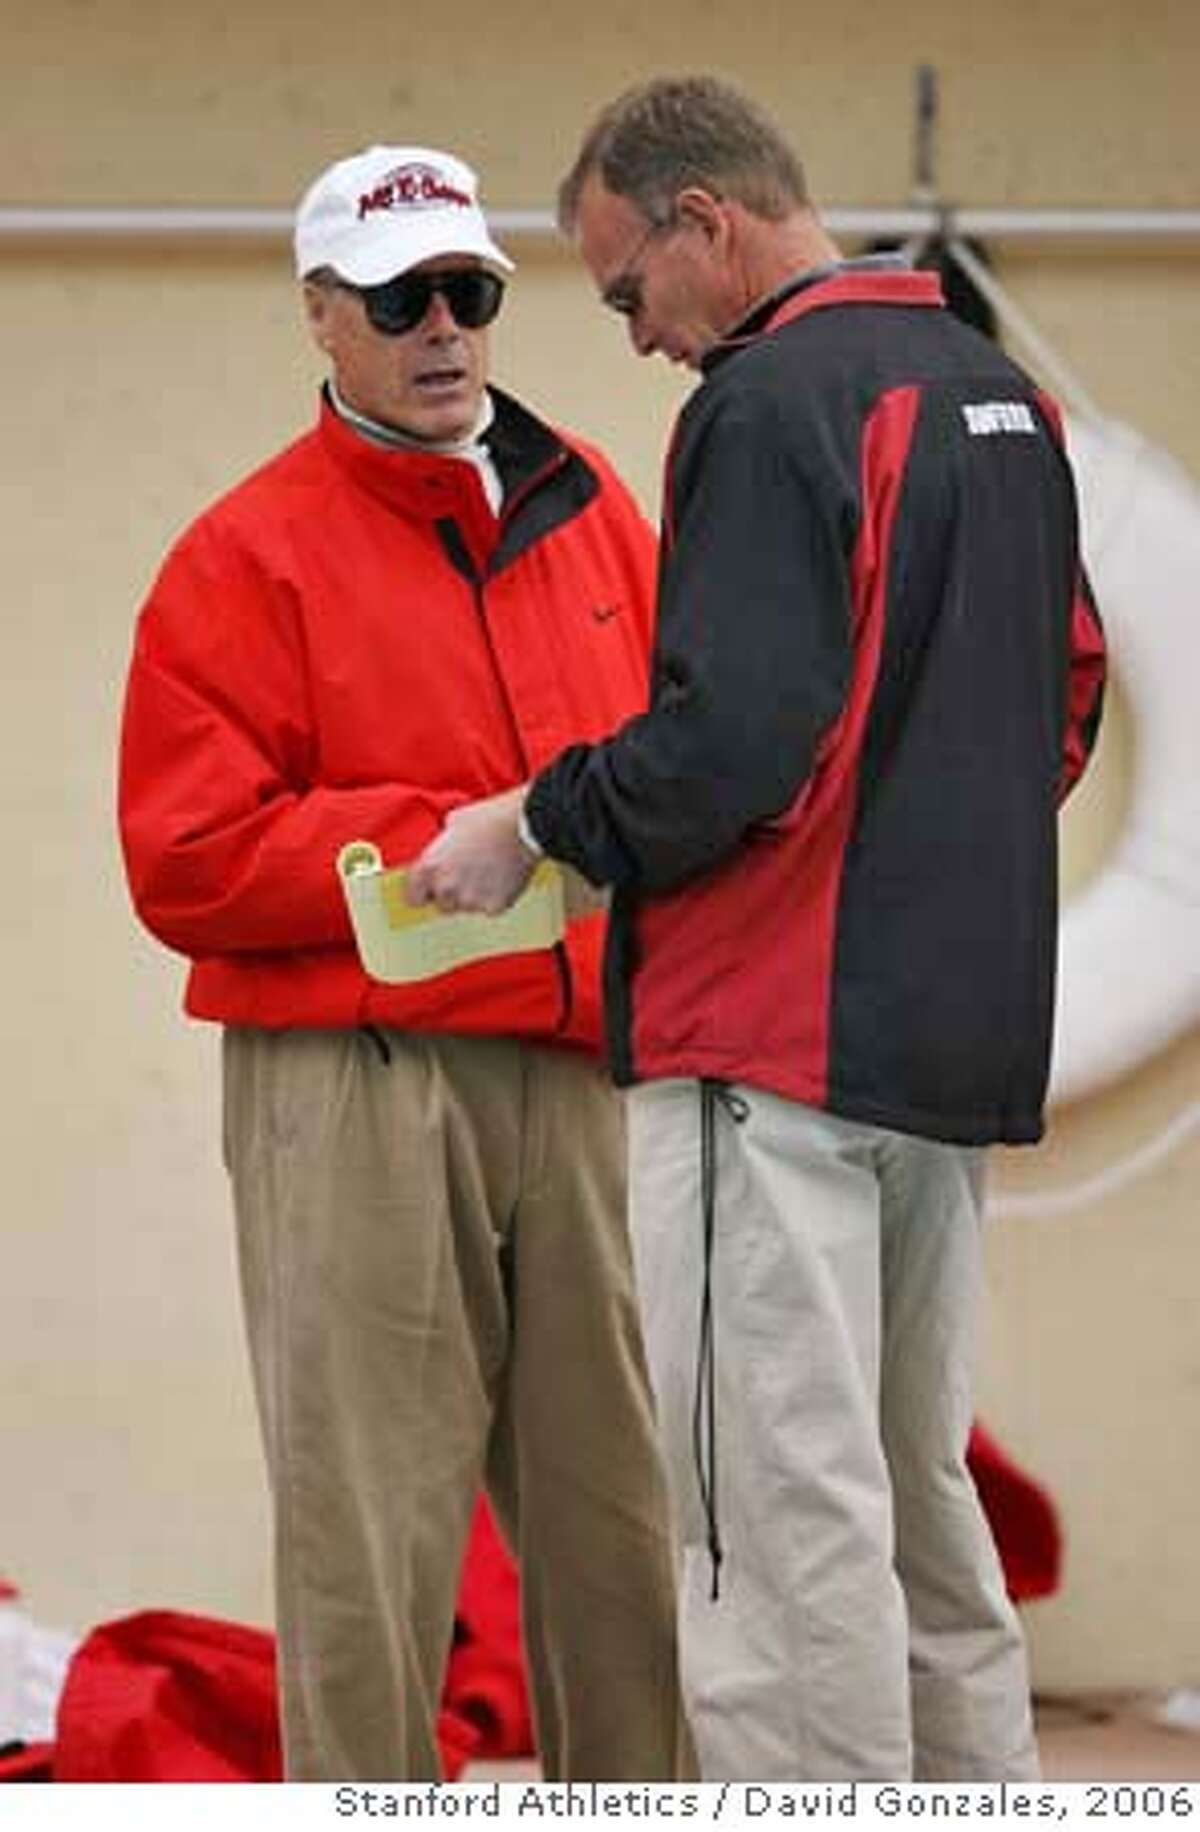 18 February 2006: Head coach Skip Kenney with Ted Knapp during Stanford's 136-107 win over the California Golden Bears at the Avery Aquatic Center in Stanford, CA. Photo by David Gonzales/Stanford Athletics